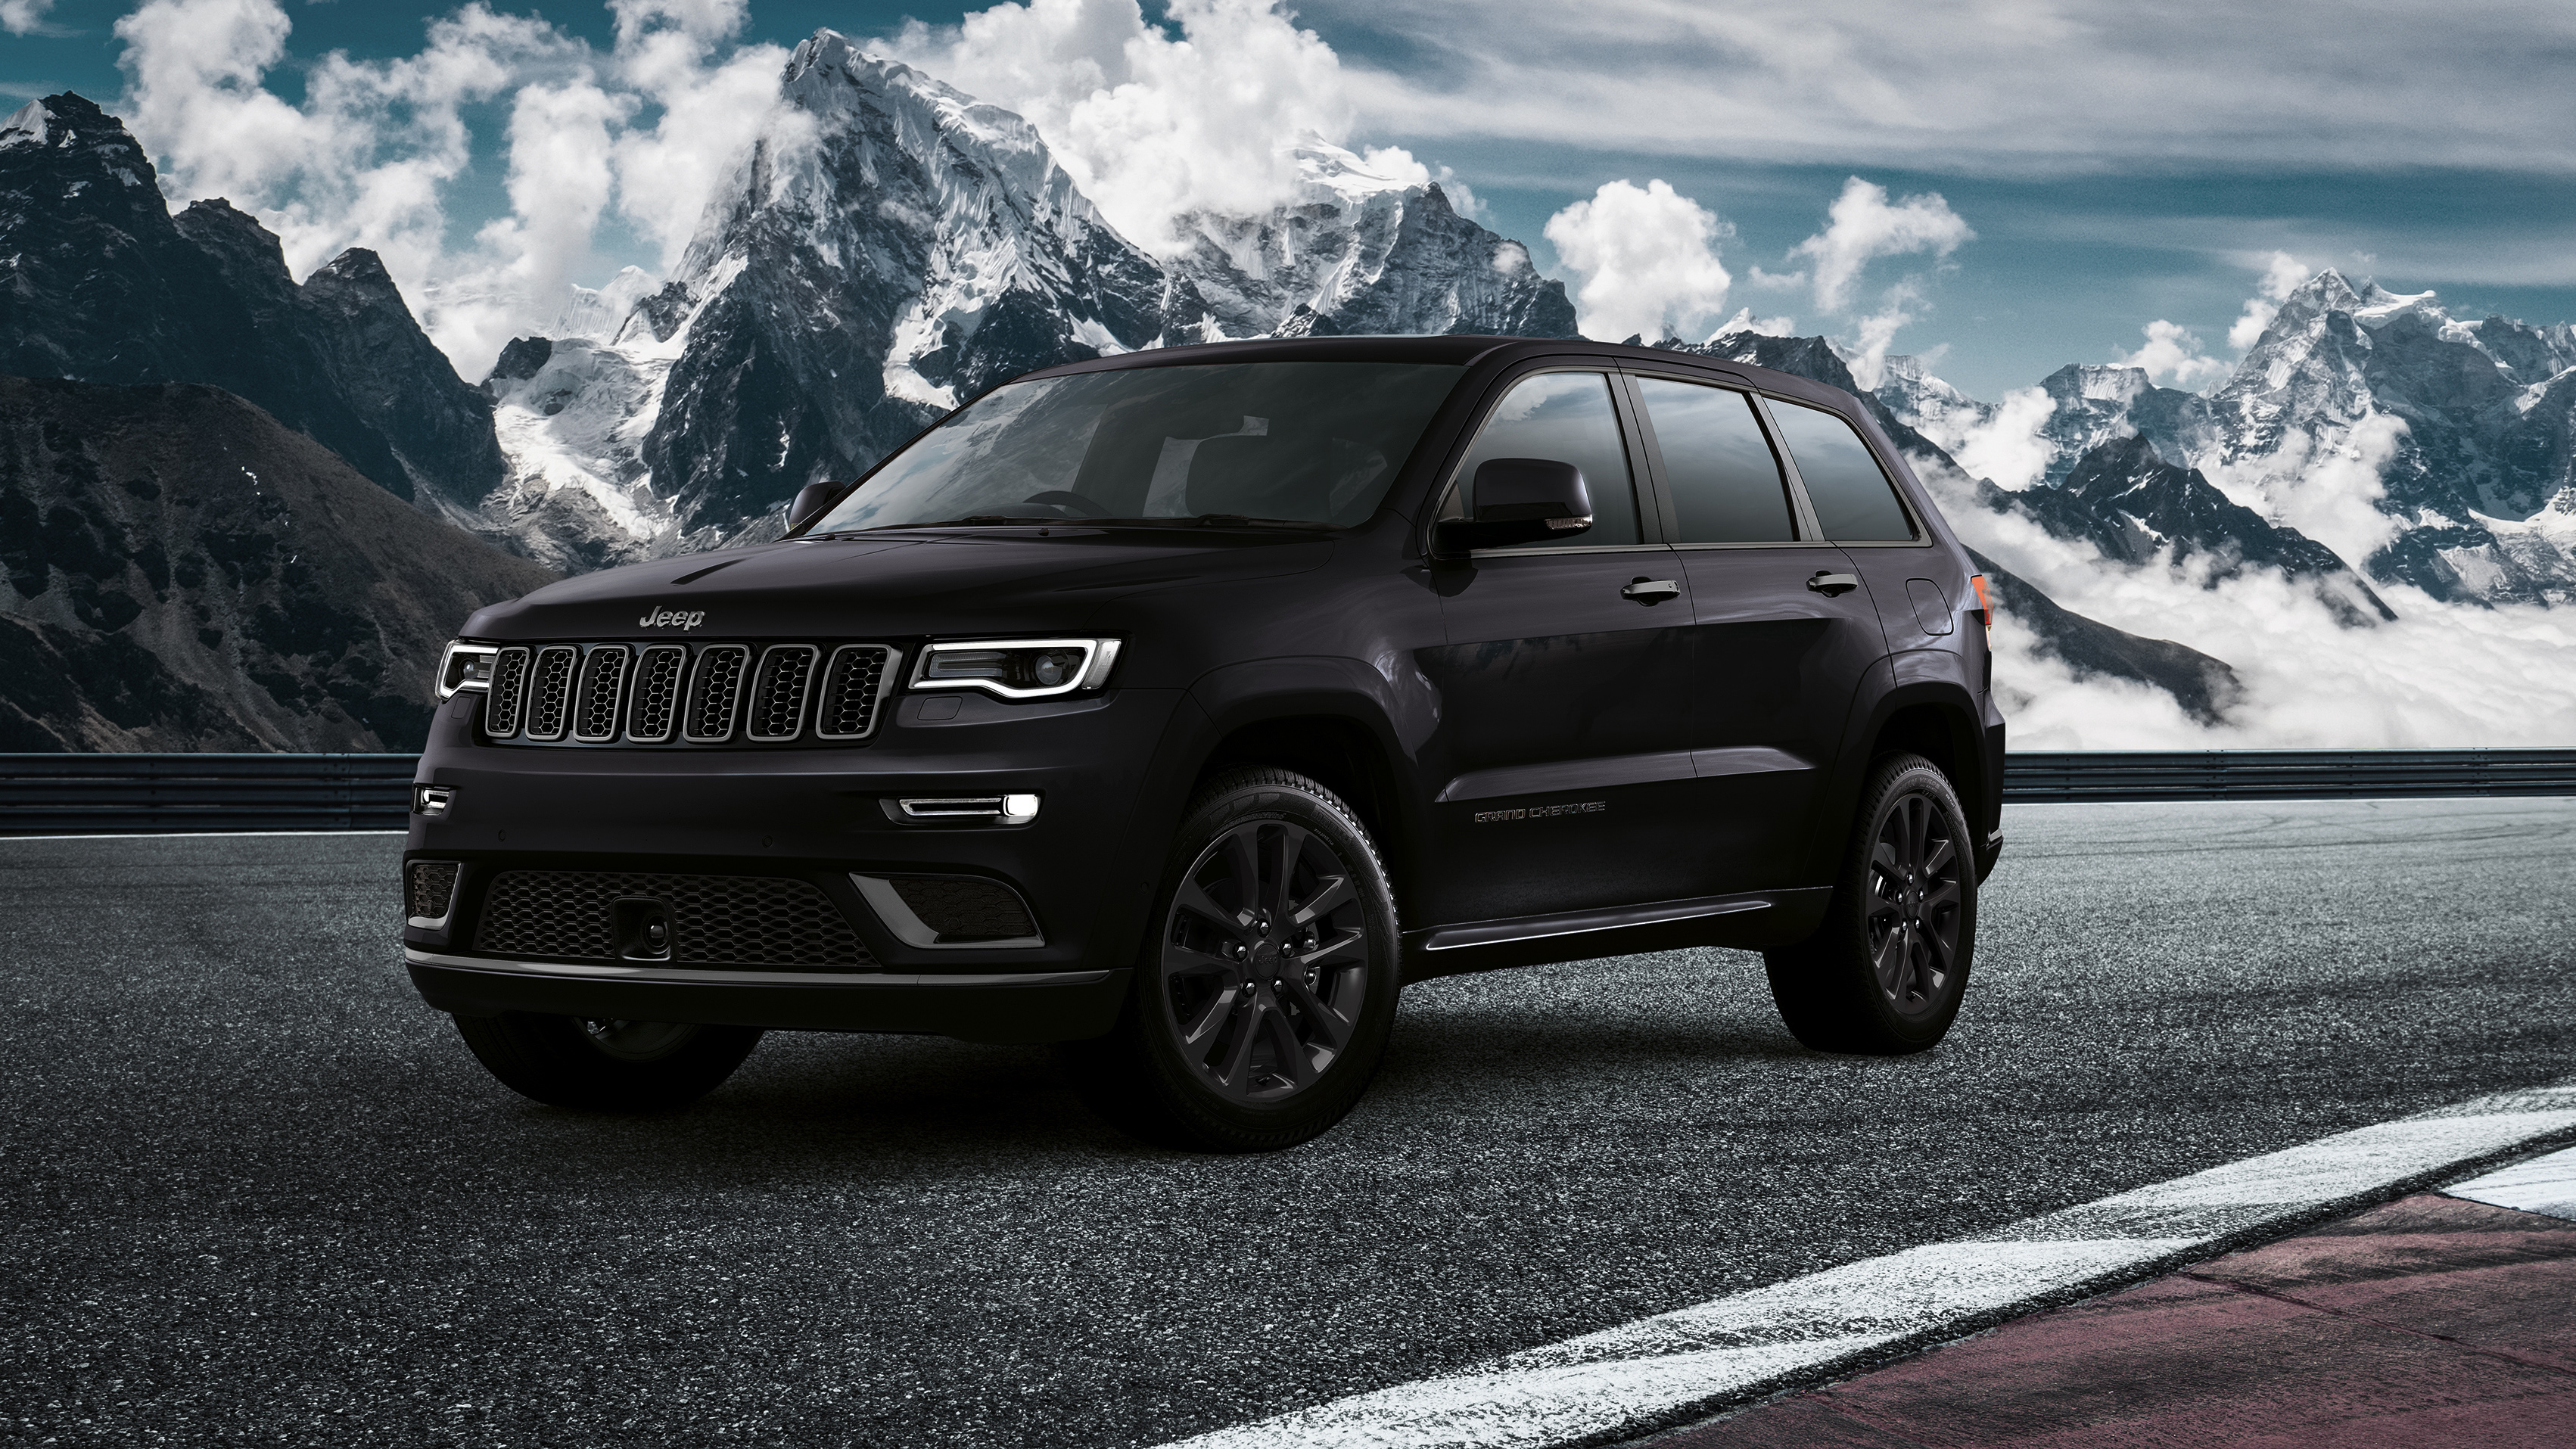 2019 Jeep Grand Cherokee S Wallpaper HD Car Wallpapers ID 9474 3404x1915